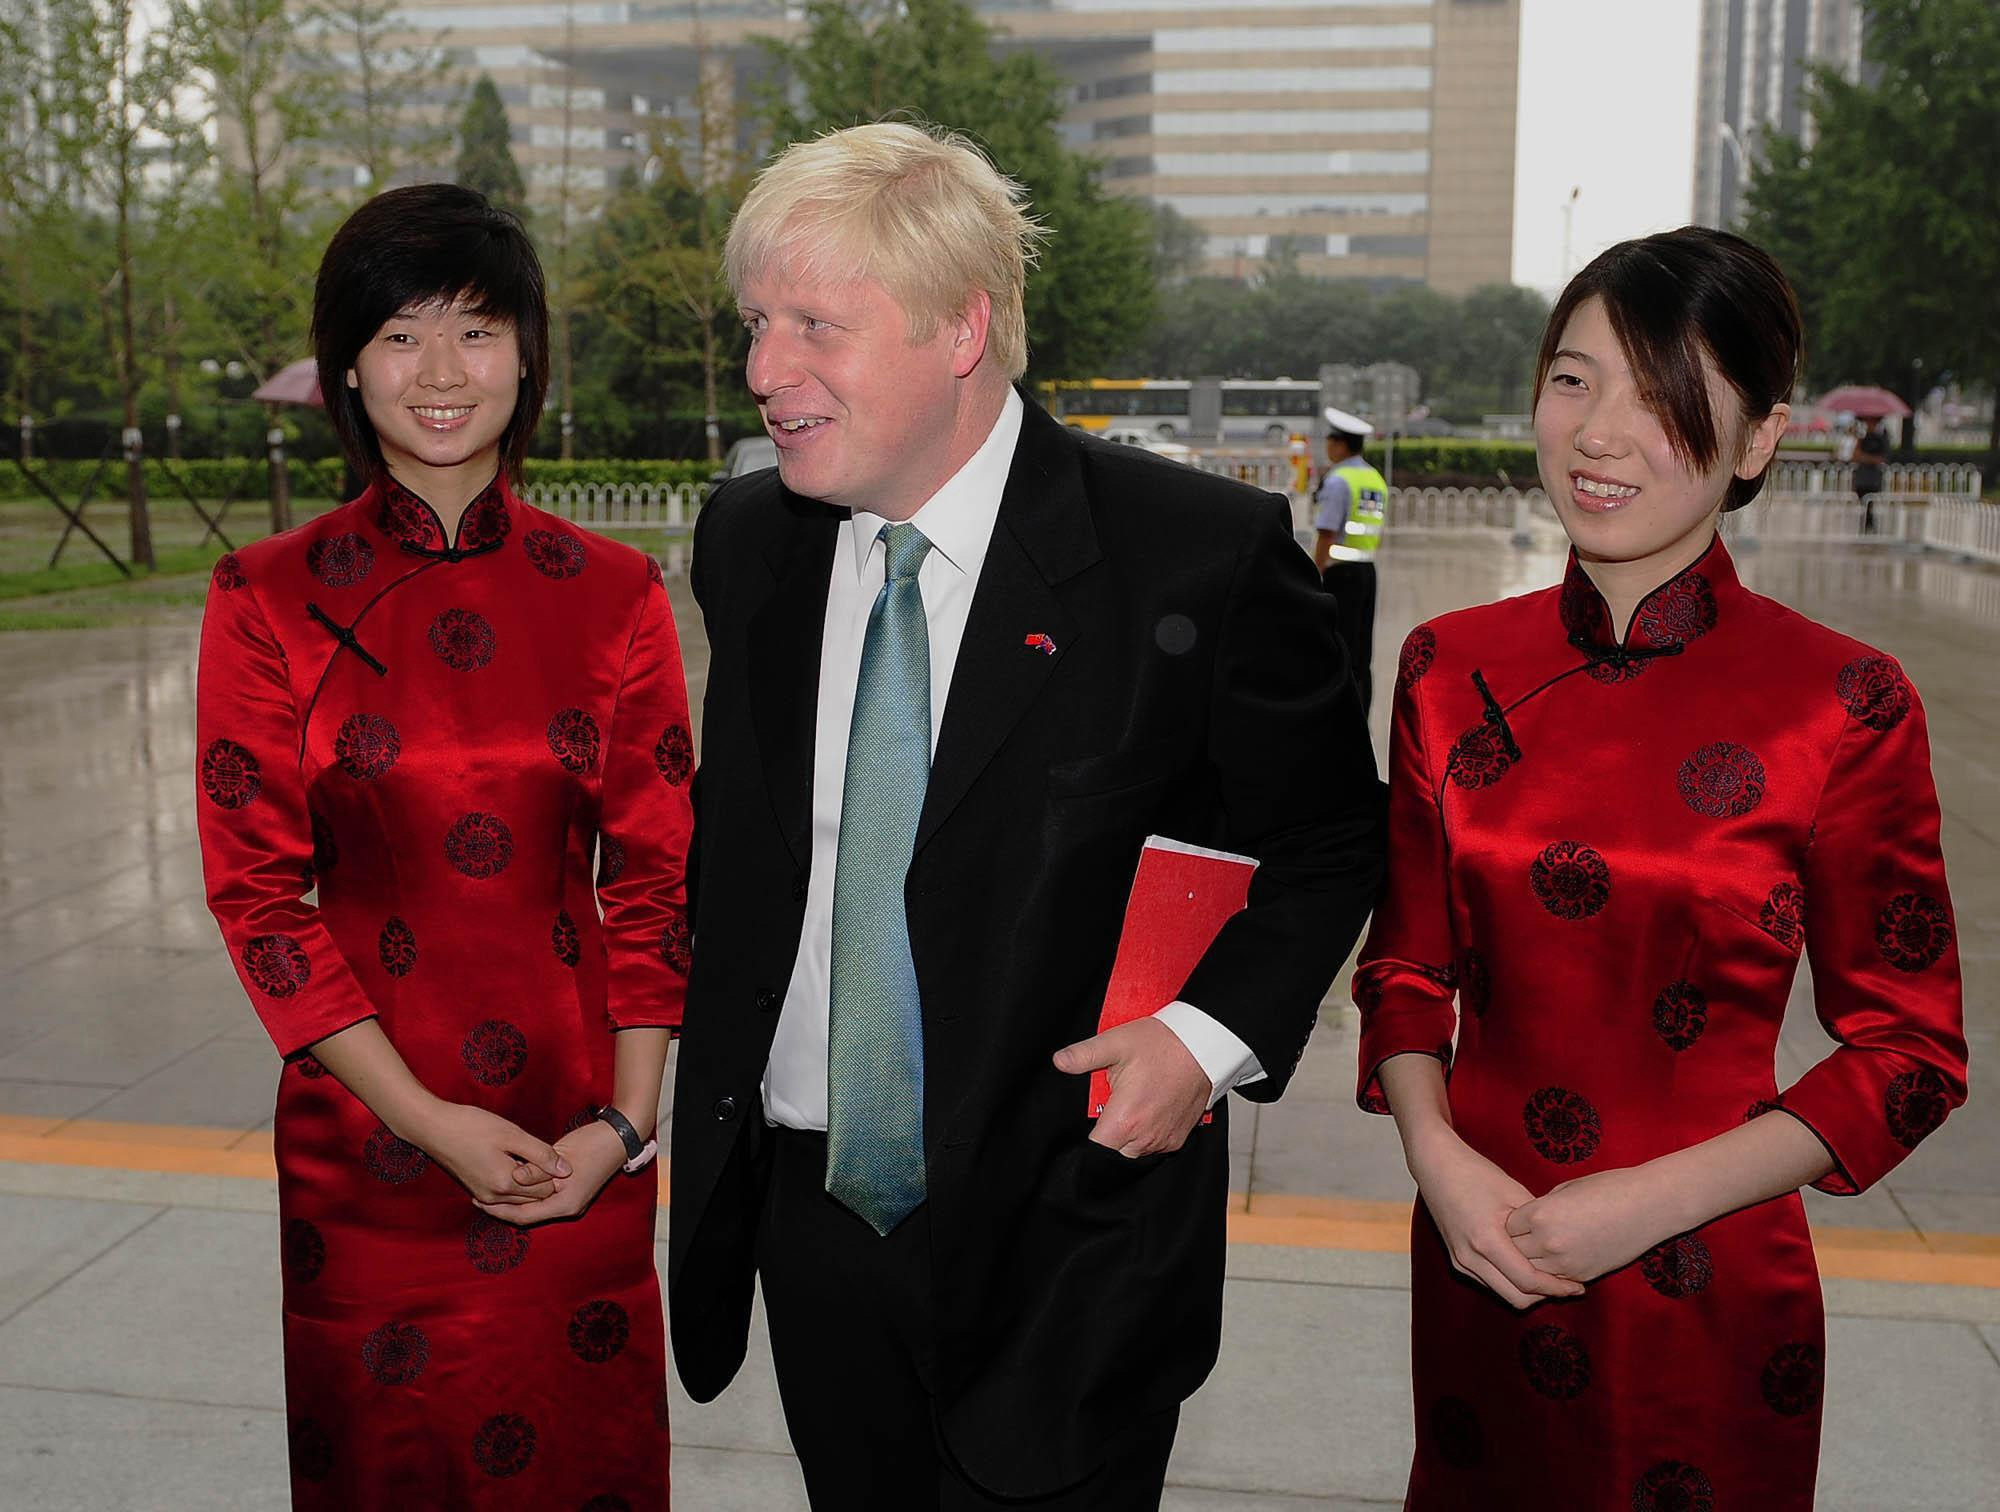 RETRANSMISSION: CAPTION CORRECTION: making clear he is arriving for meeting. Mayor of London Boris Johnson arrives at the Beijing International Hotel Conference Centre to meet the Mayor of Beijing Guo Jiniong ahead of the London Handover at the Closing Ceremony on Sunday of the 2008 Olympic Games in China.